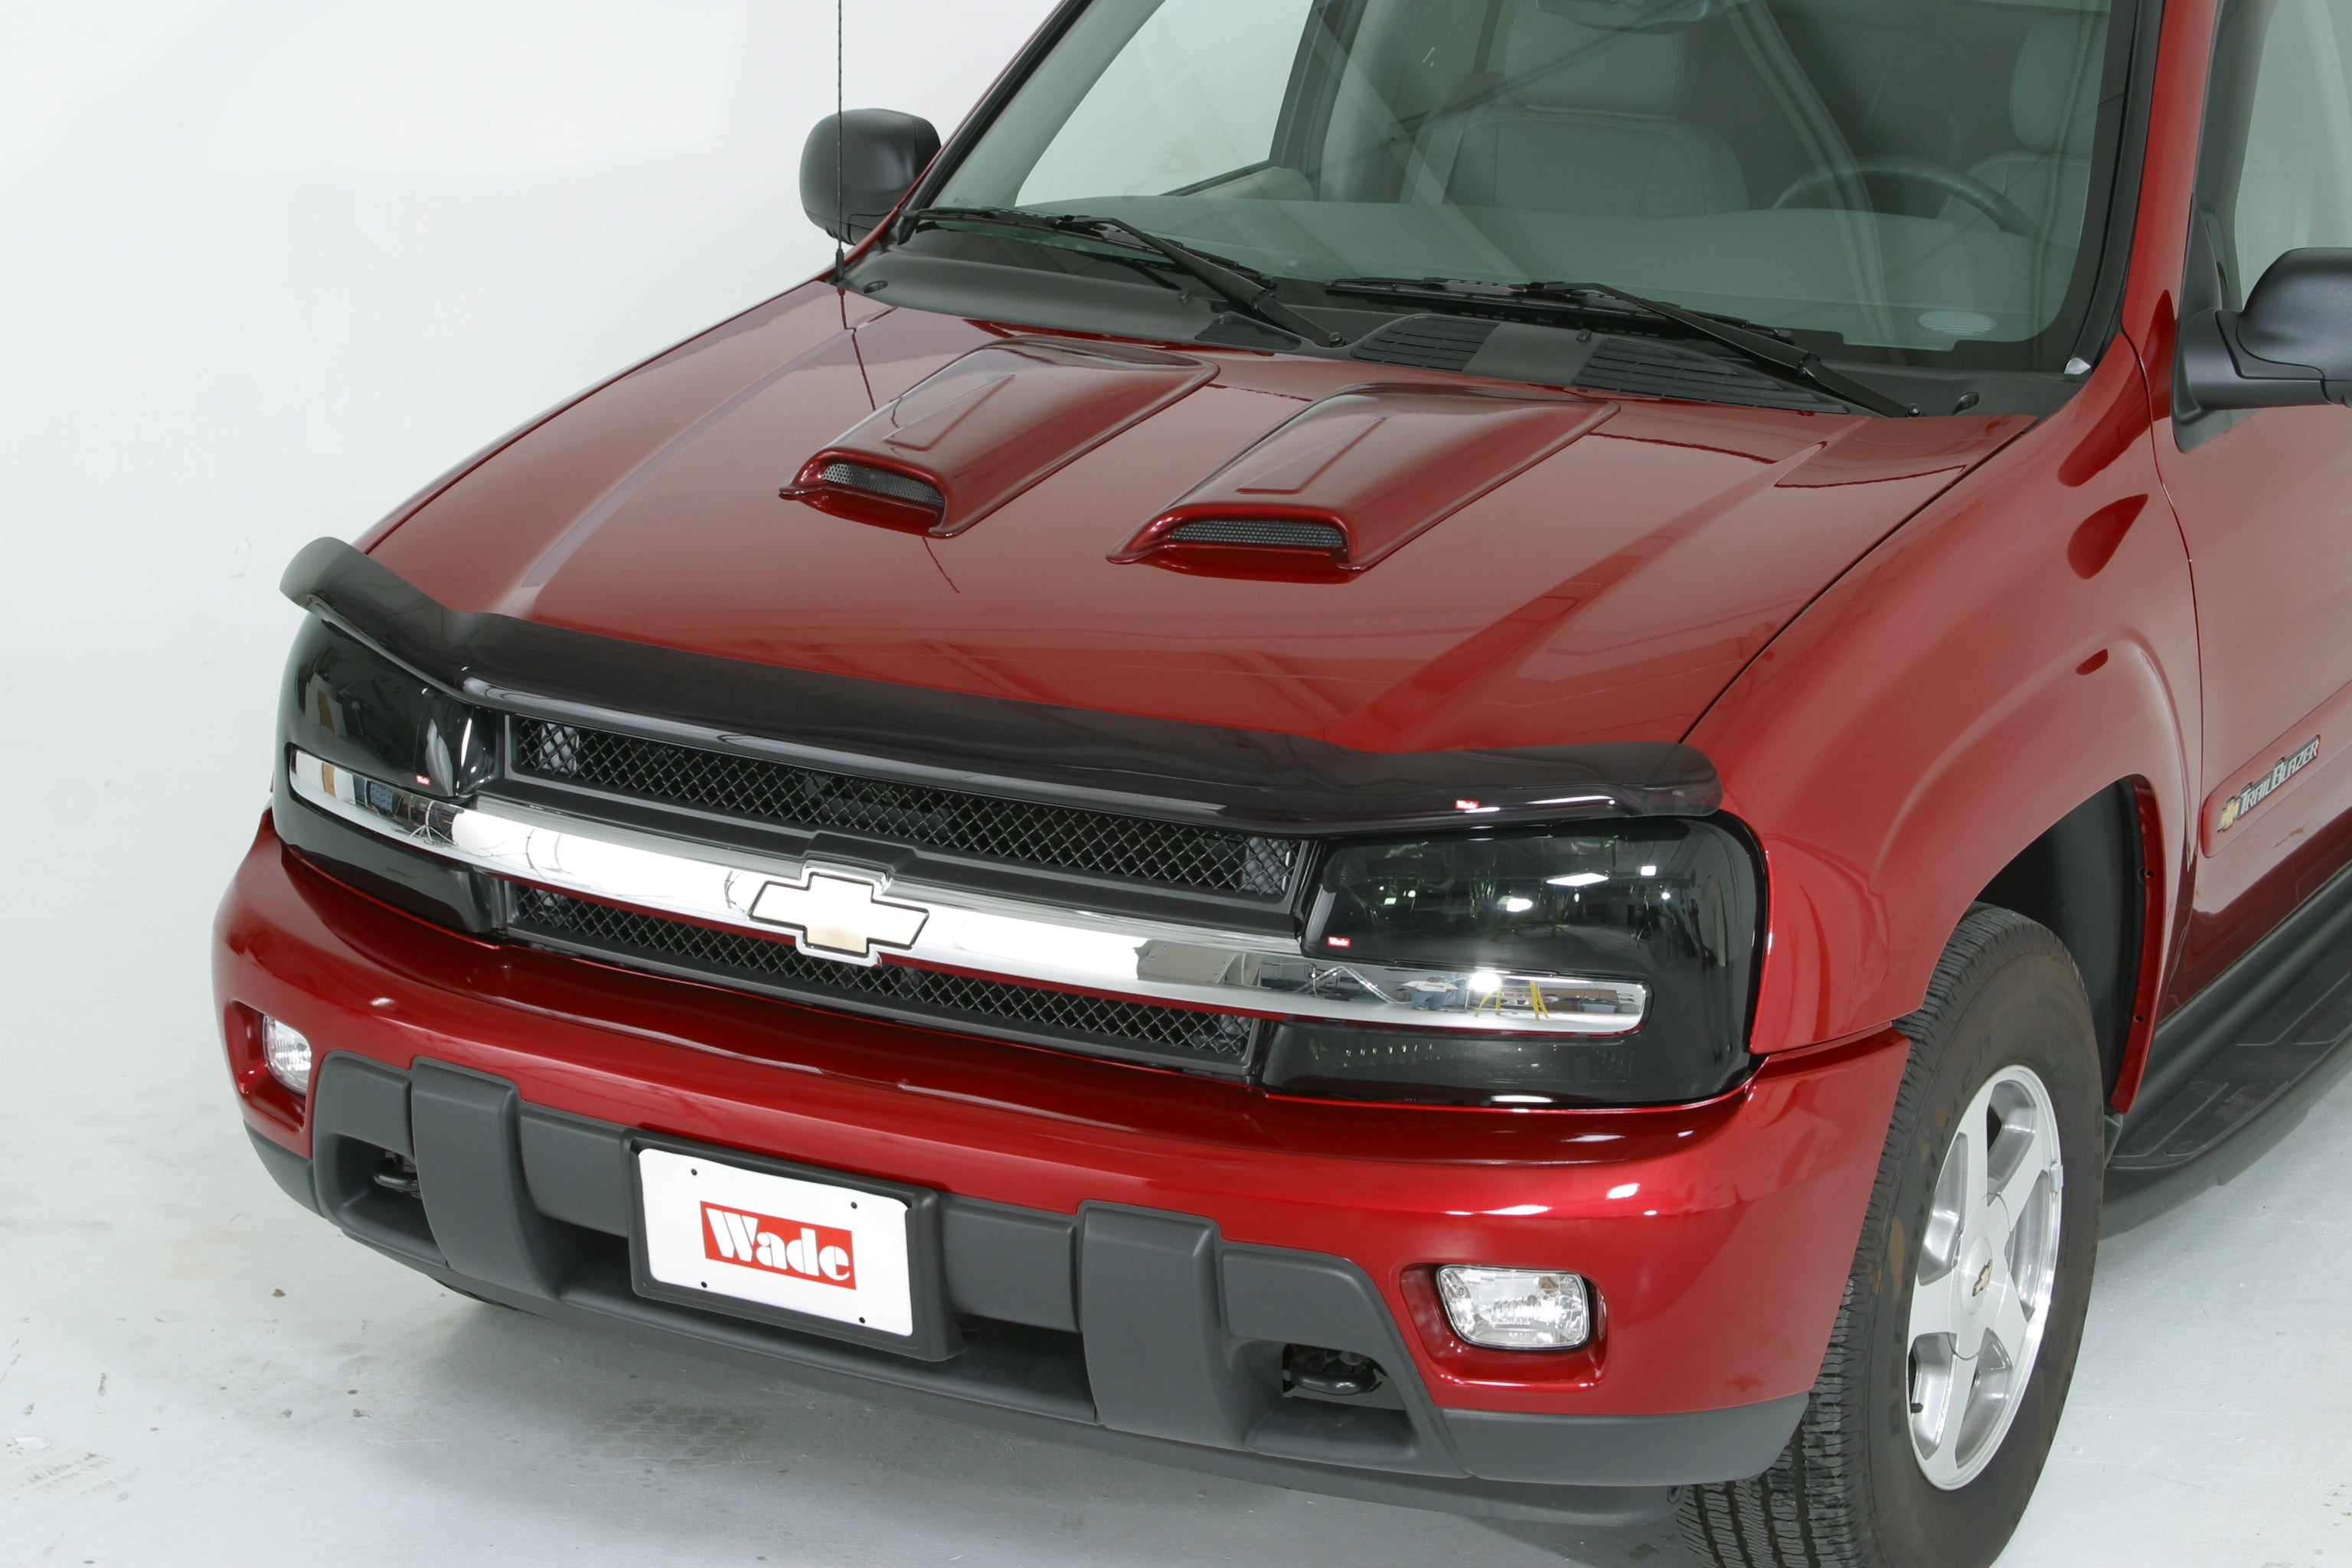 1995 Nissan Pickup 4WD (recessed light) Head Light Covers